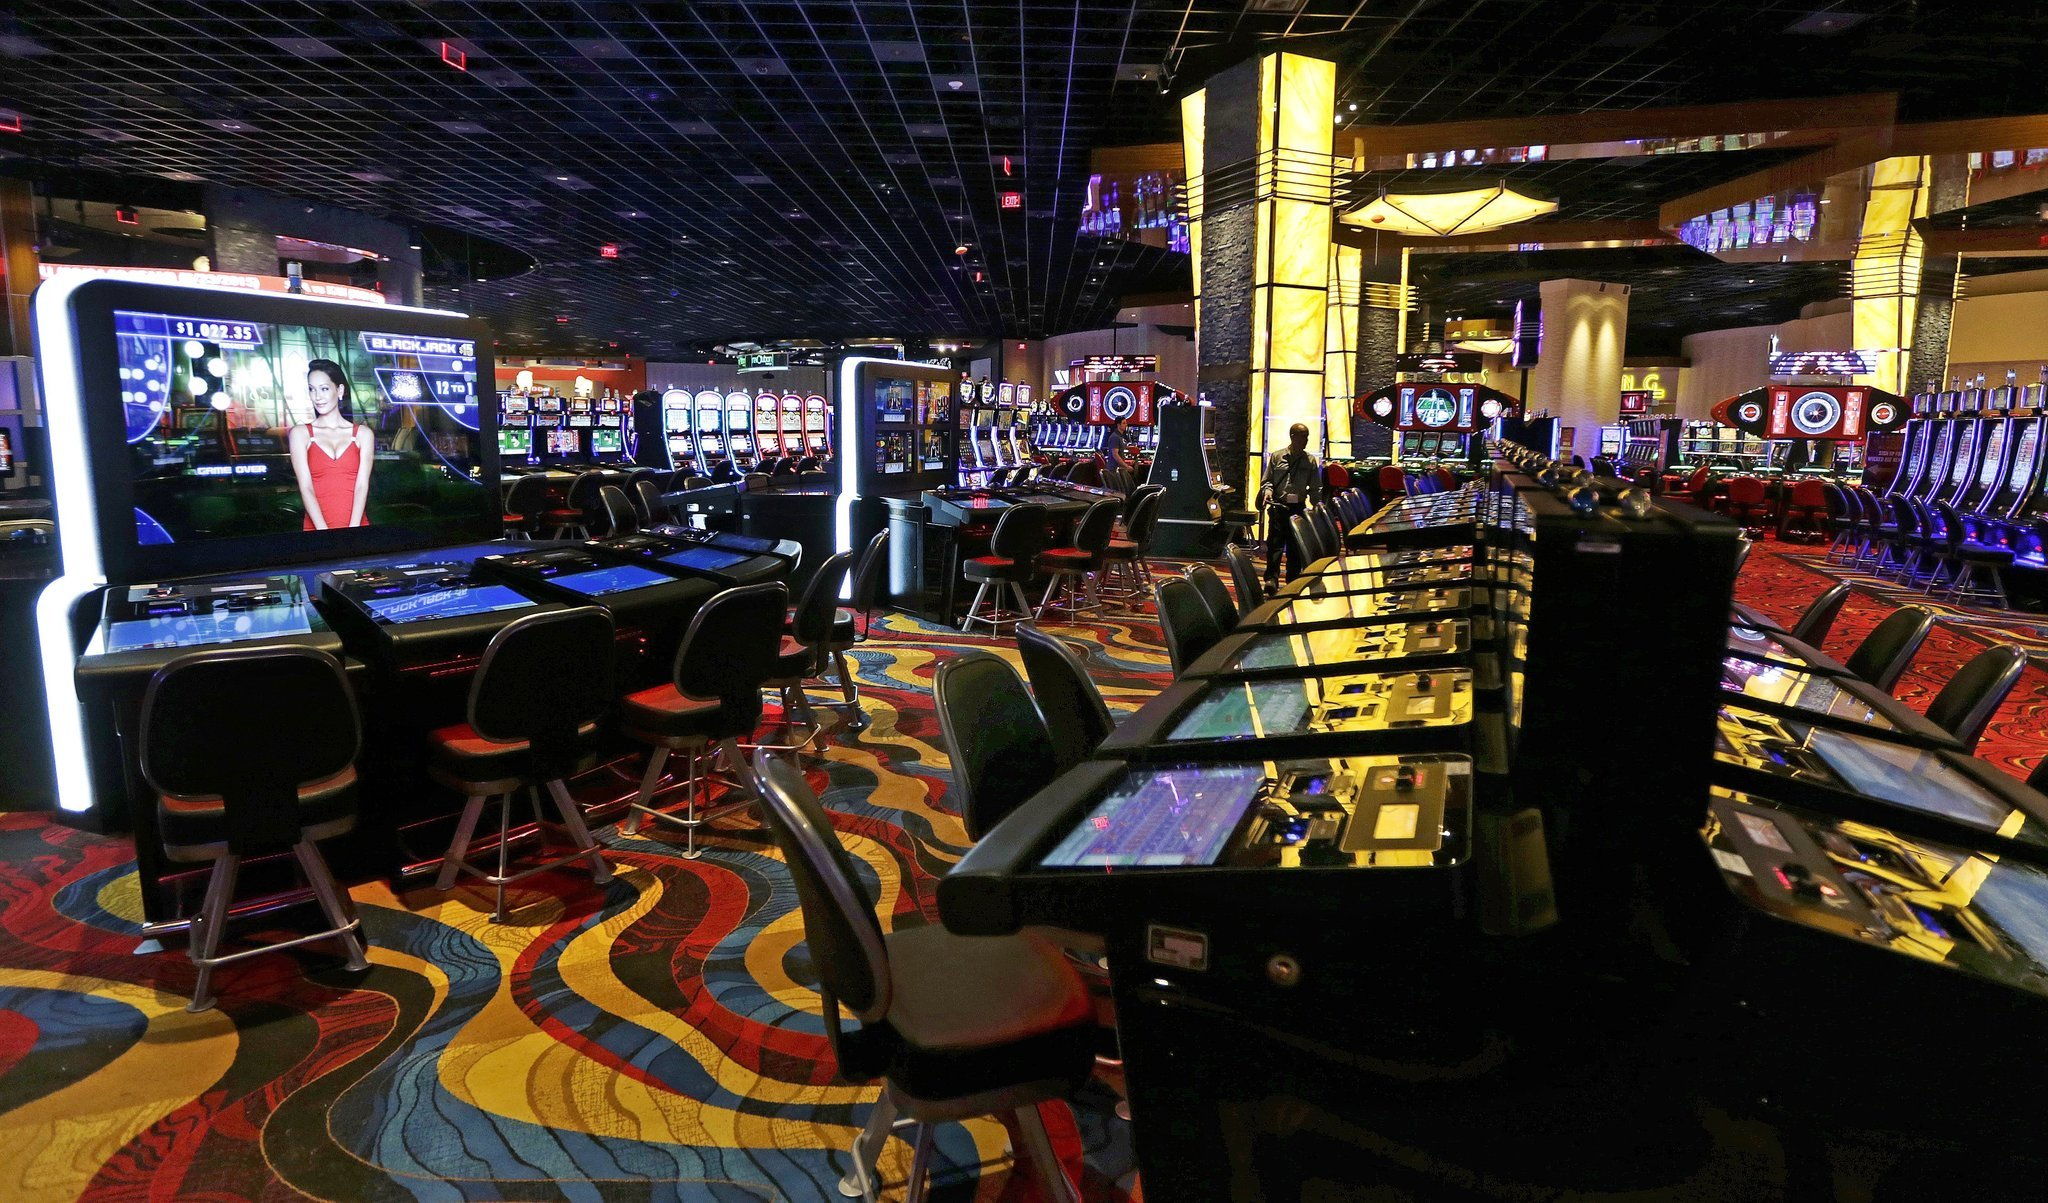 Types of gambling tables